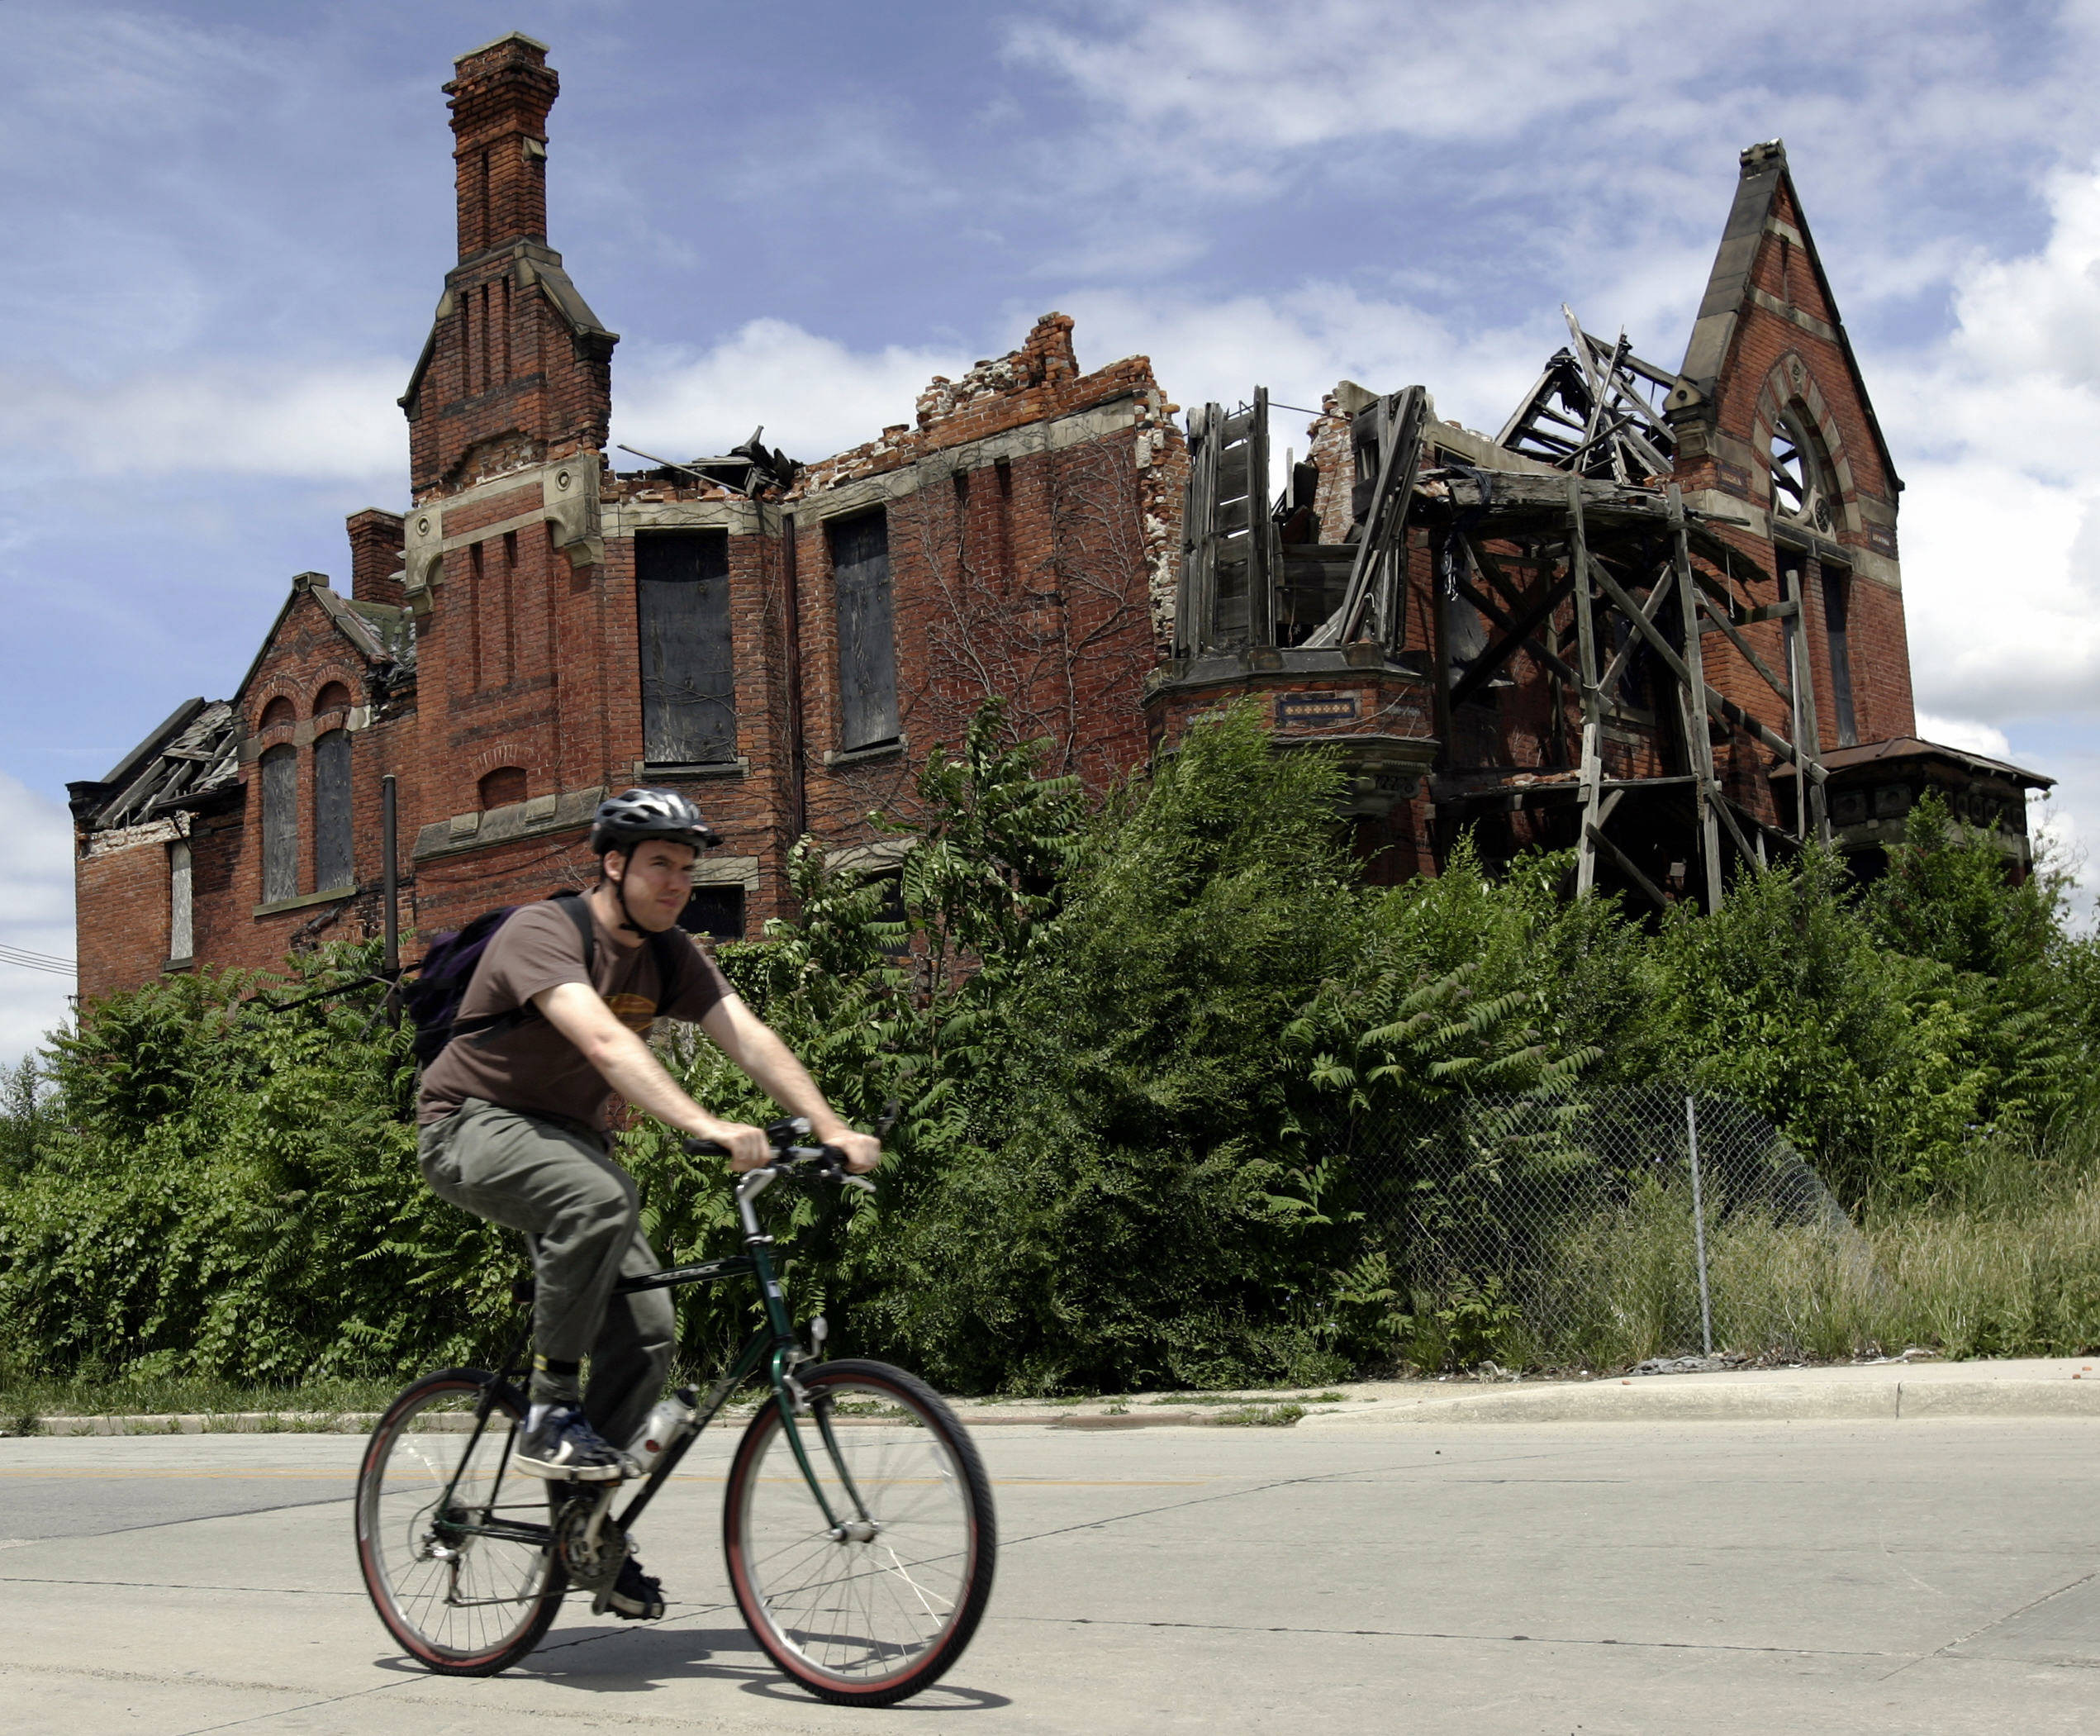 A resident passes an abandoned home in what was once a thriving middle class area in Detroit in 2005. AFP PHOTO/JEFF HAYNES